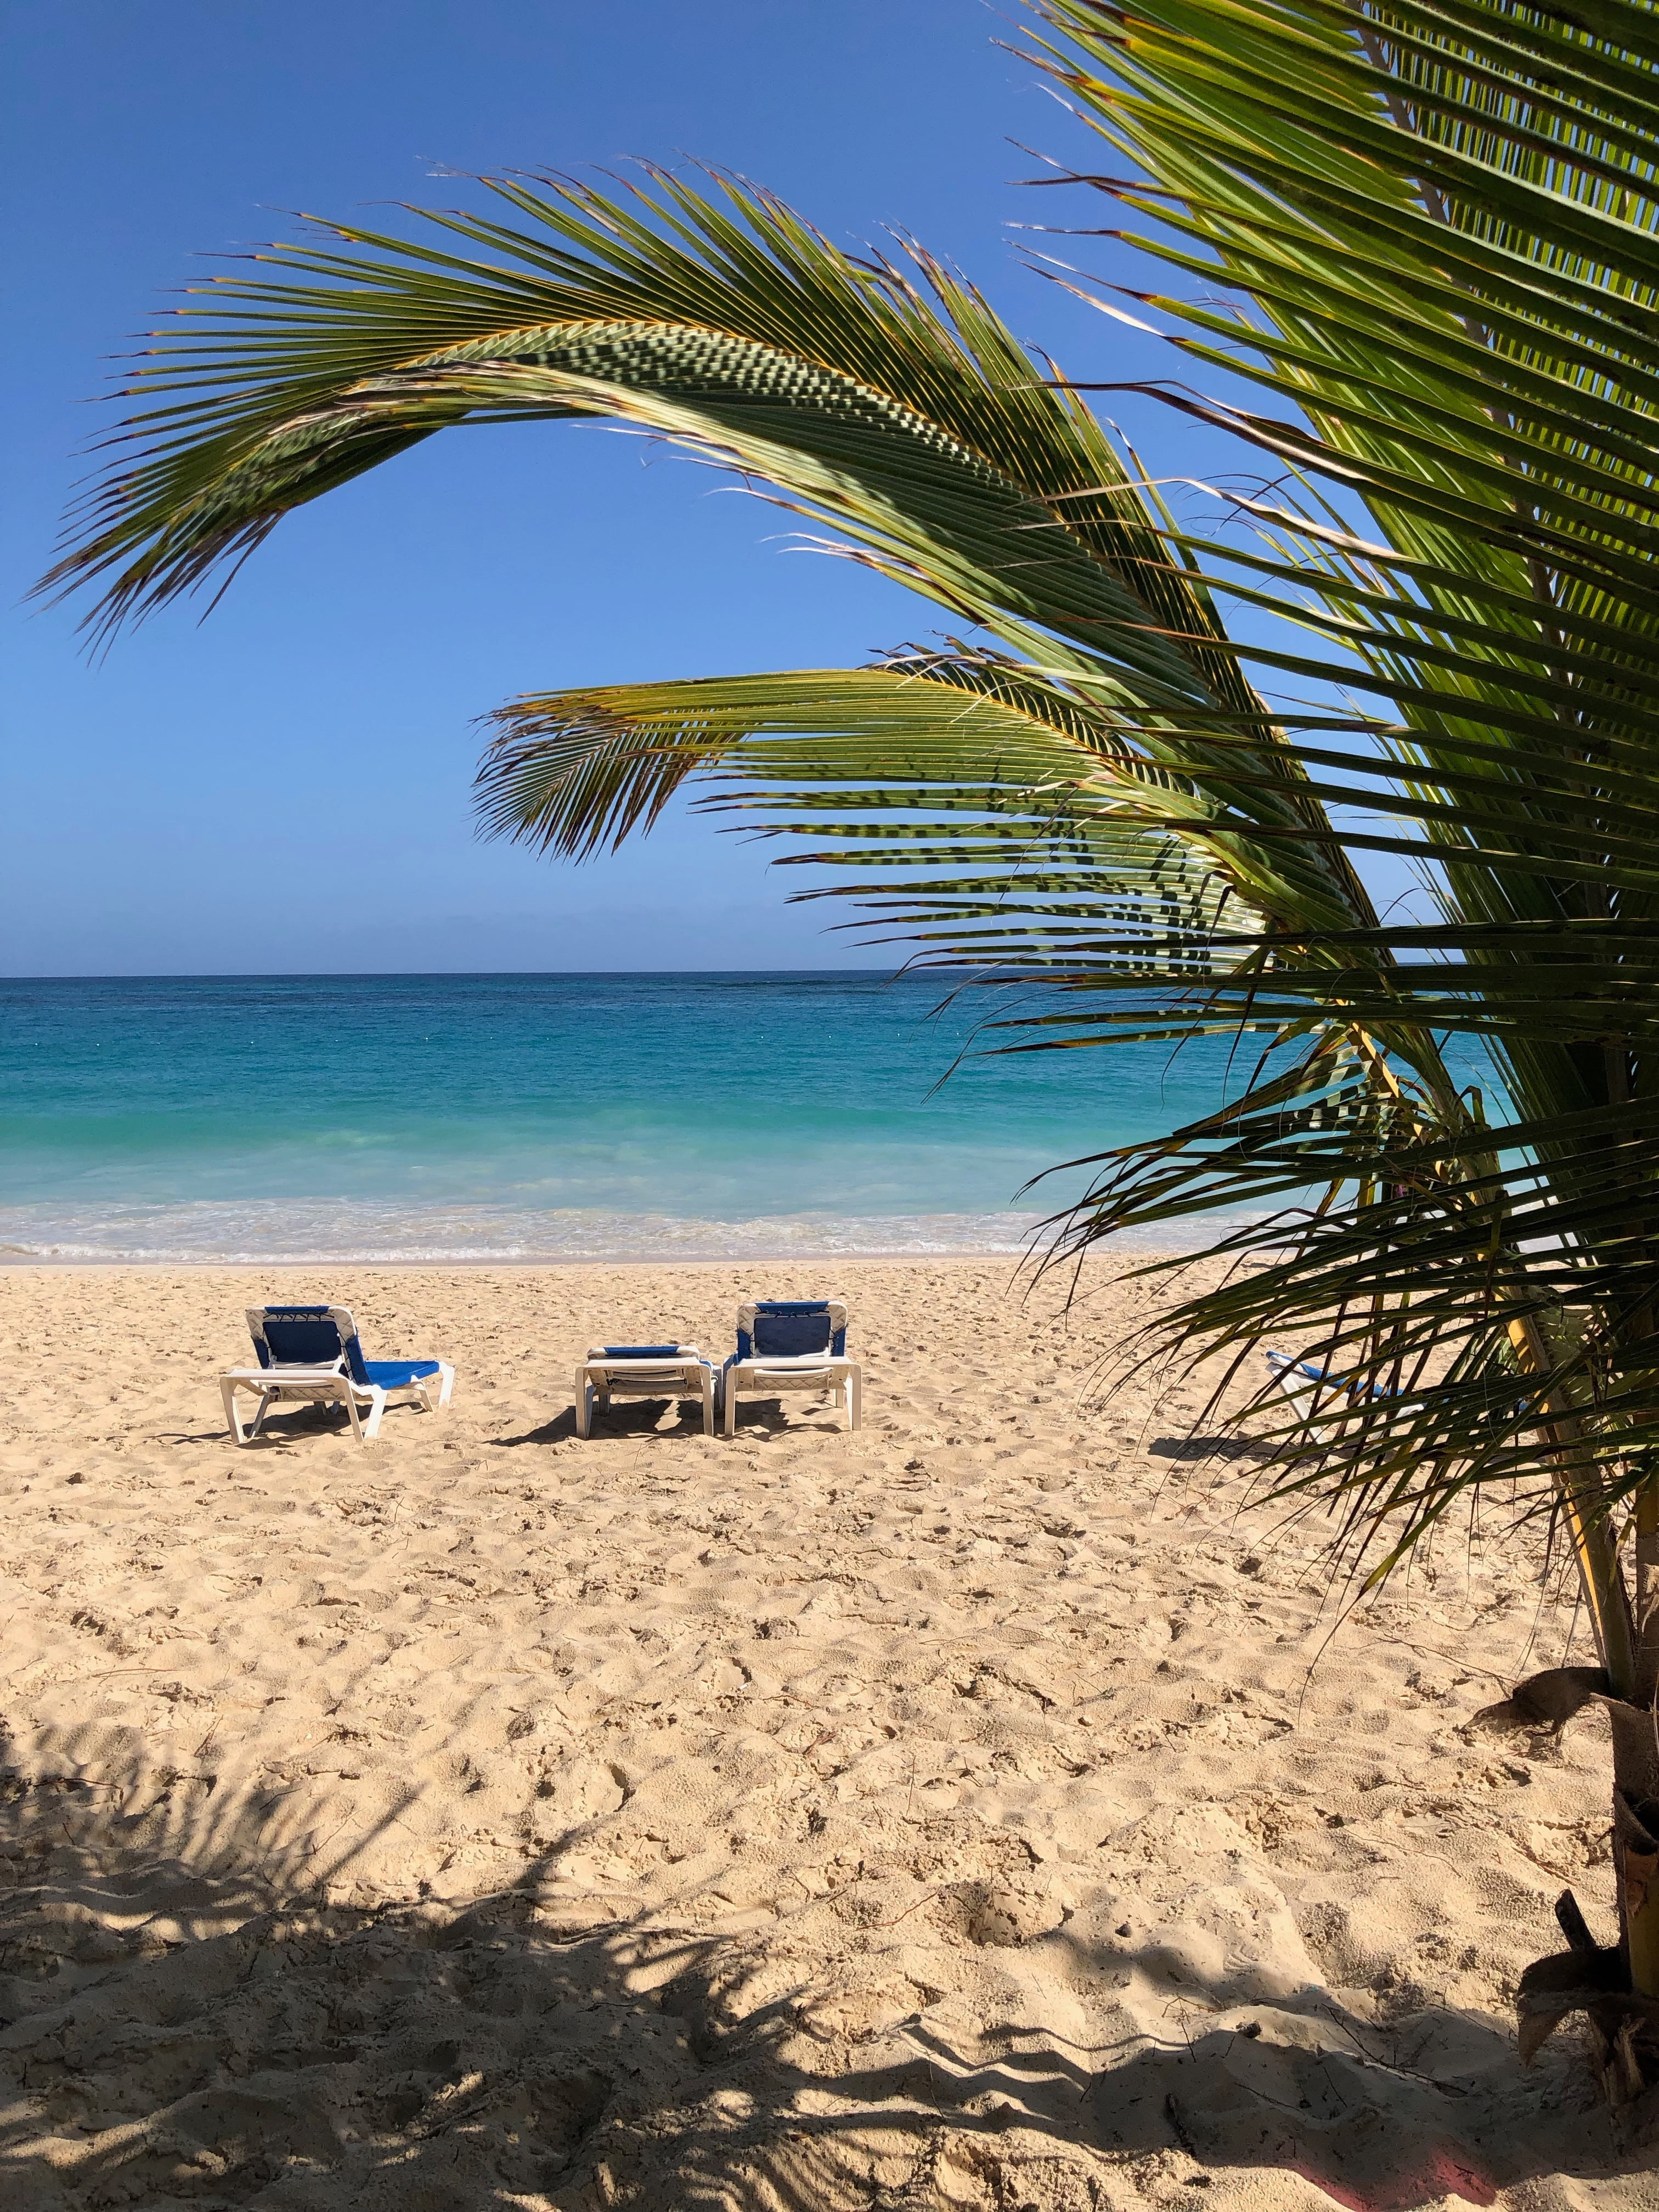 View of Beach through Palm Trees in Dominican Republic